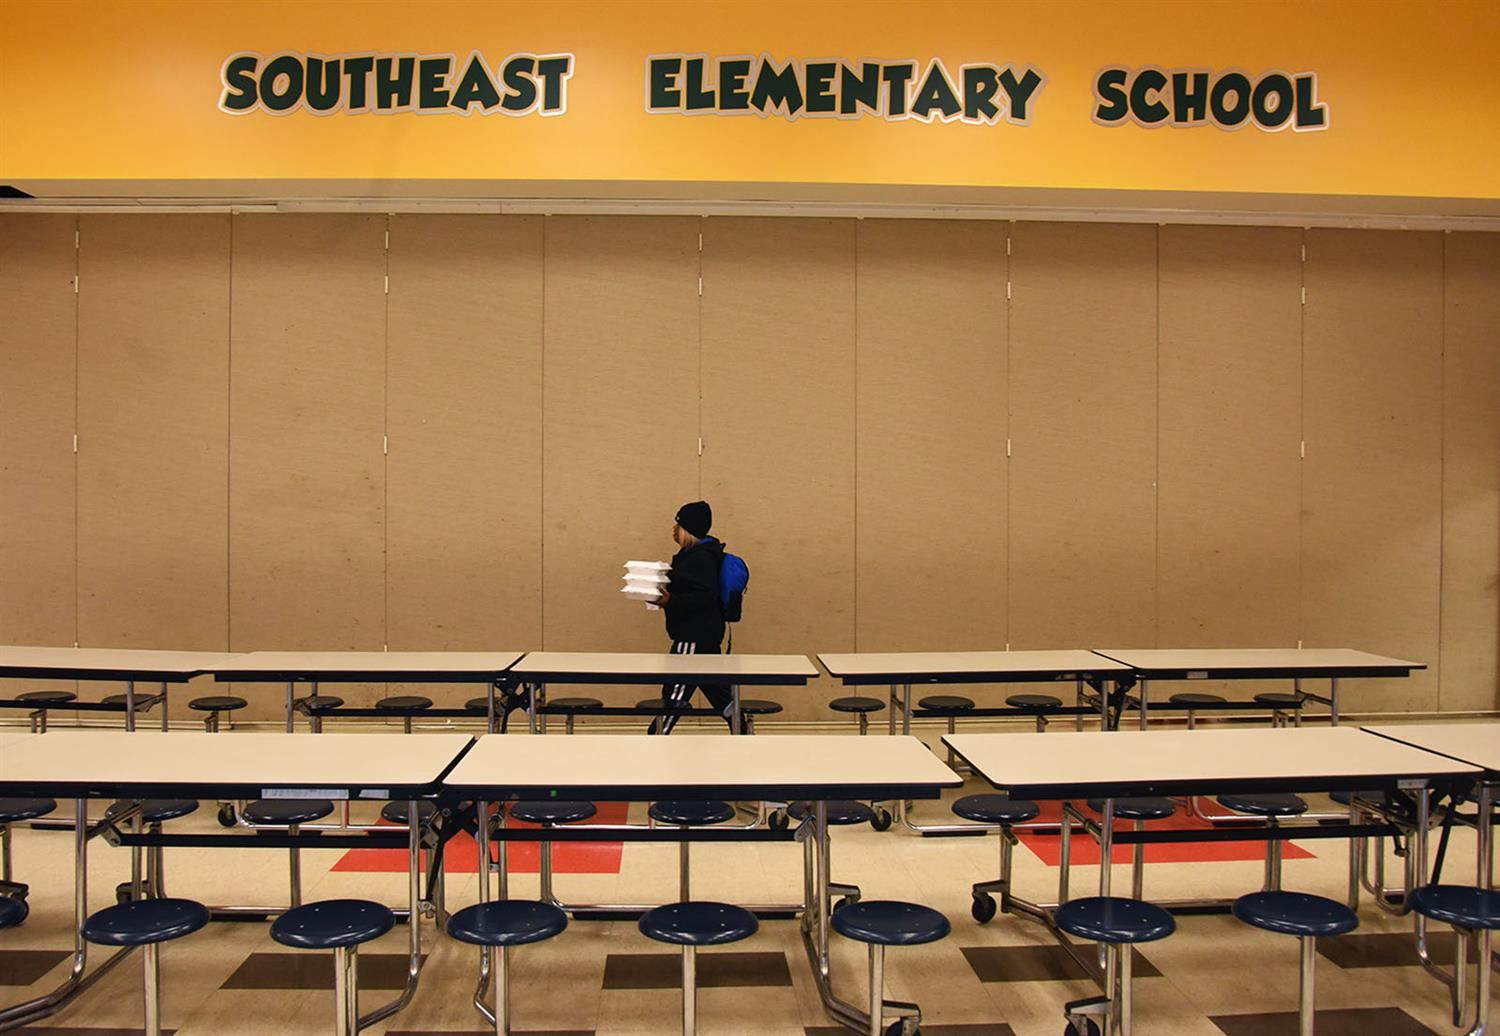 Woman walks through an empty school cafeteria carrying Styrofoam takeout trays.